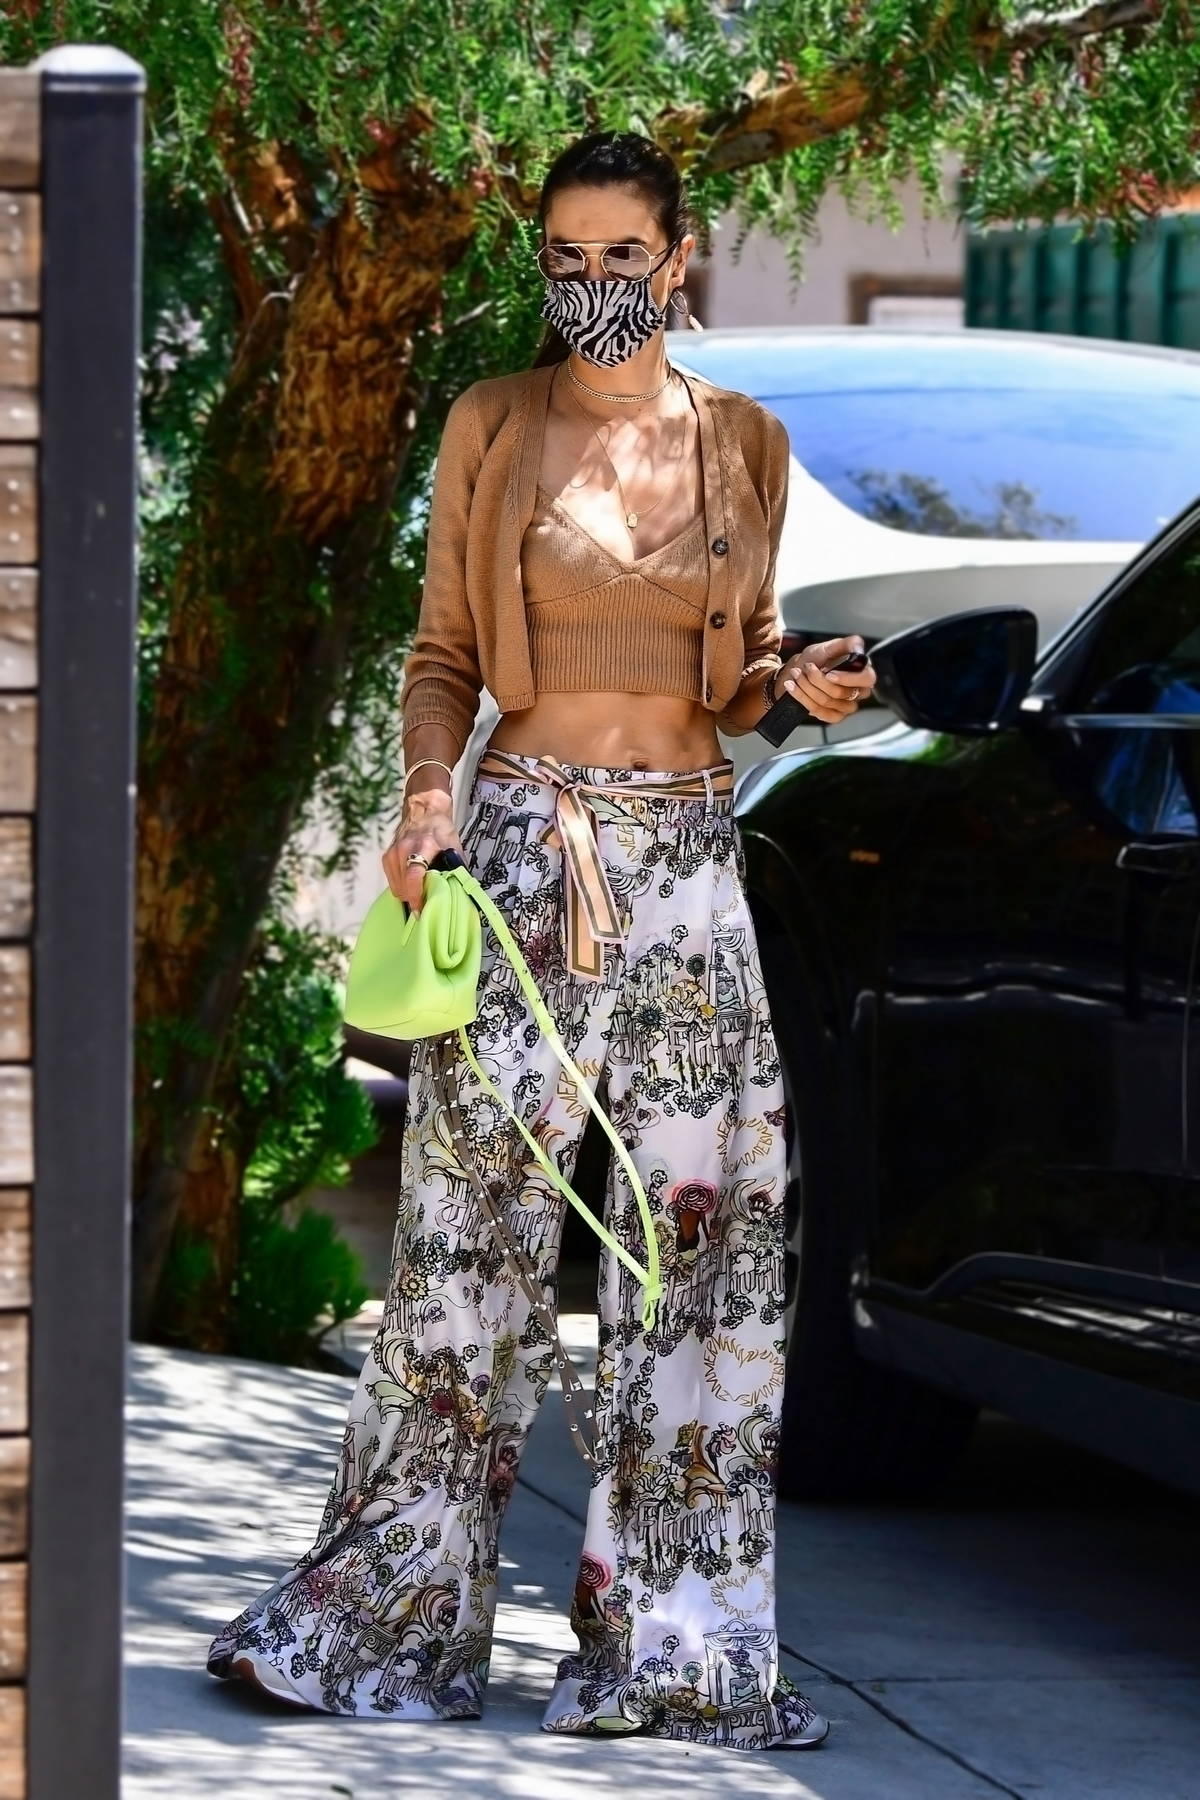 Alessandra Ambrosio flashes her toned midriff in a crop top with floral print baggy pants while out in Beverly Hills, California